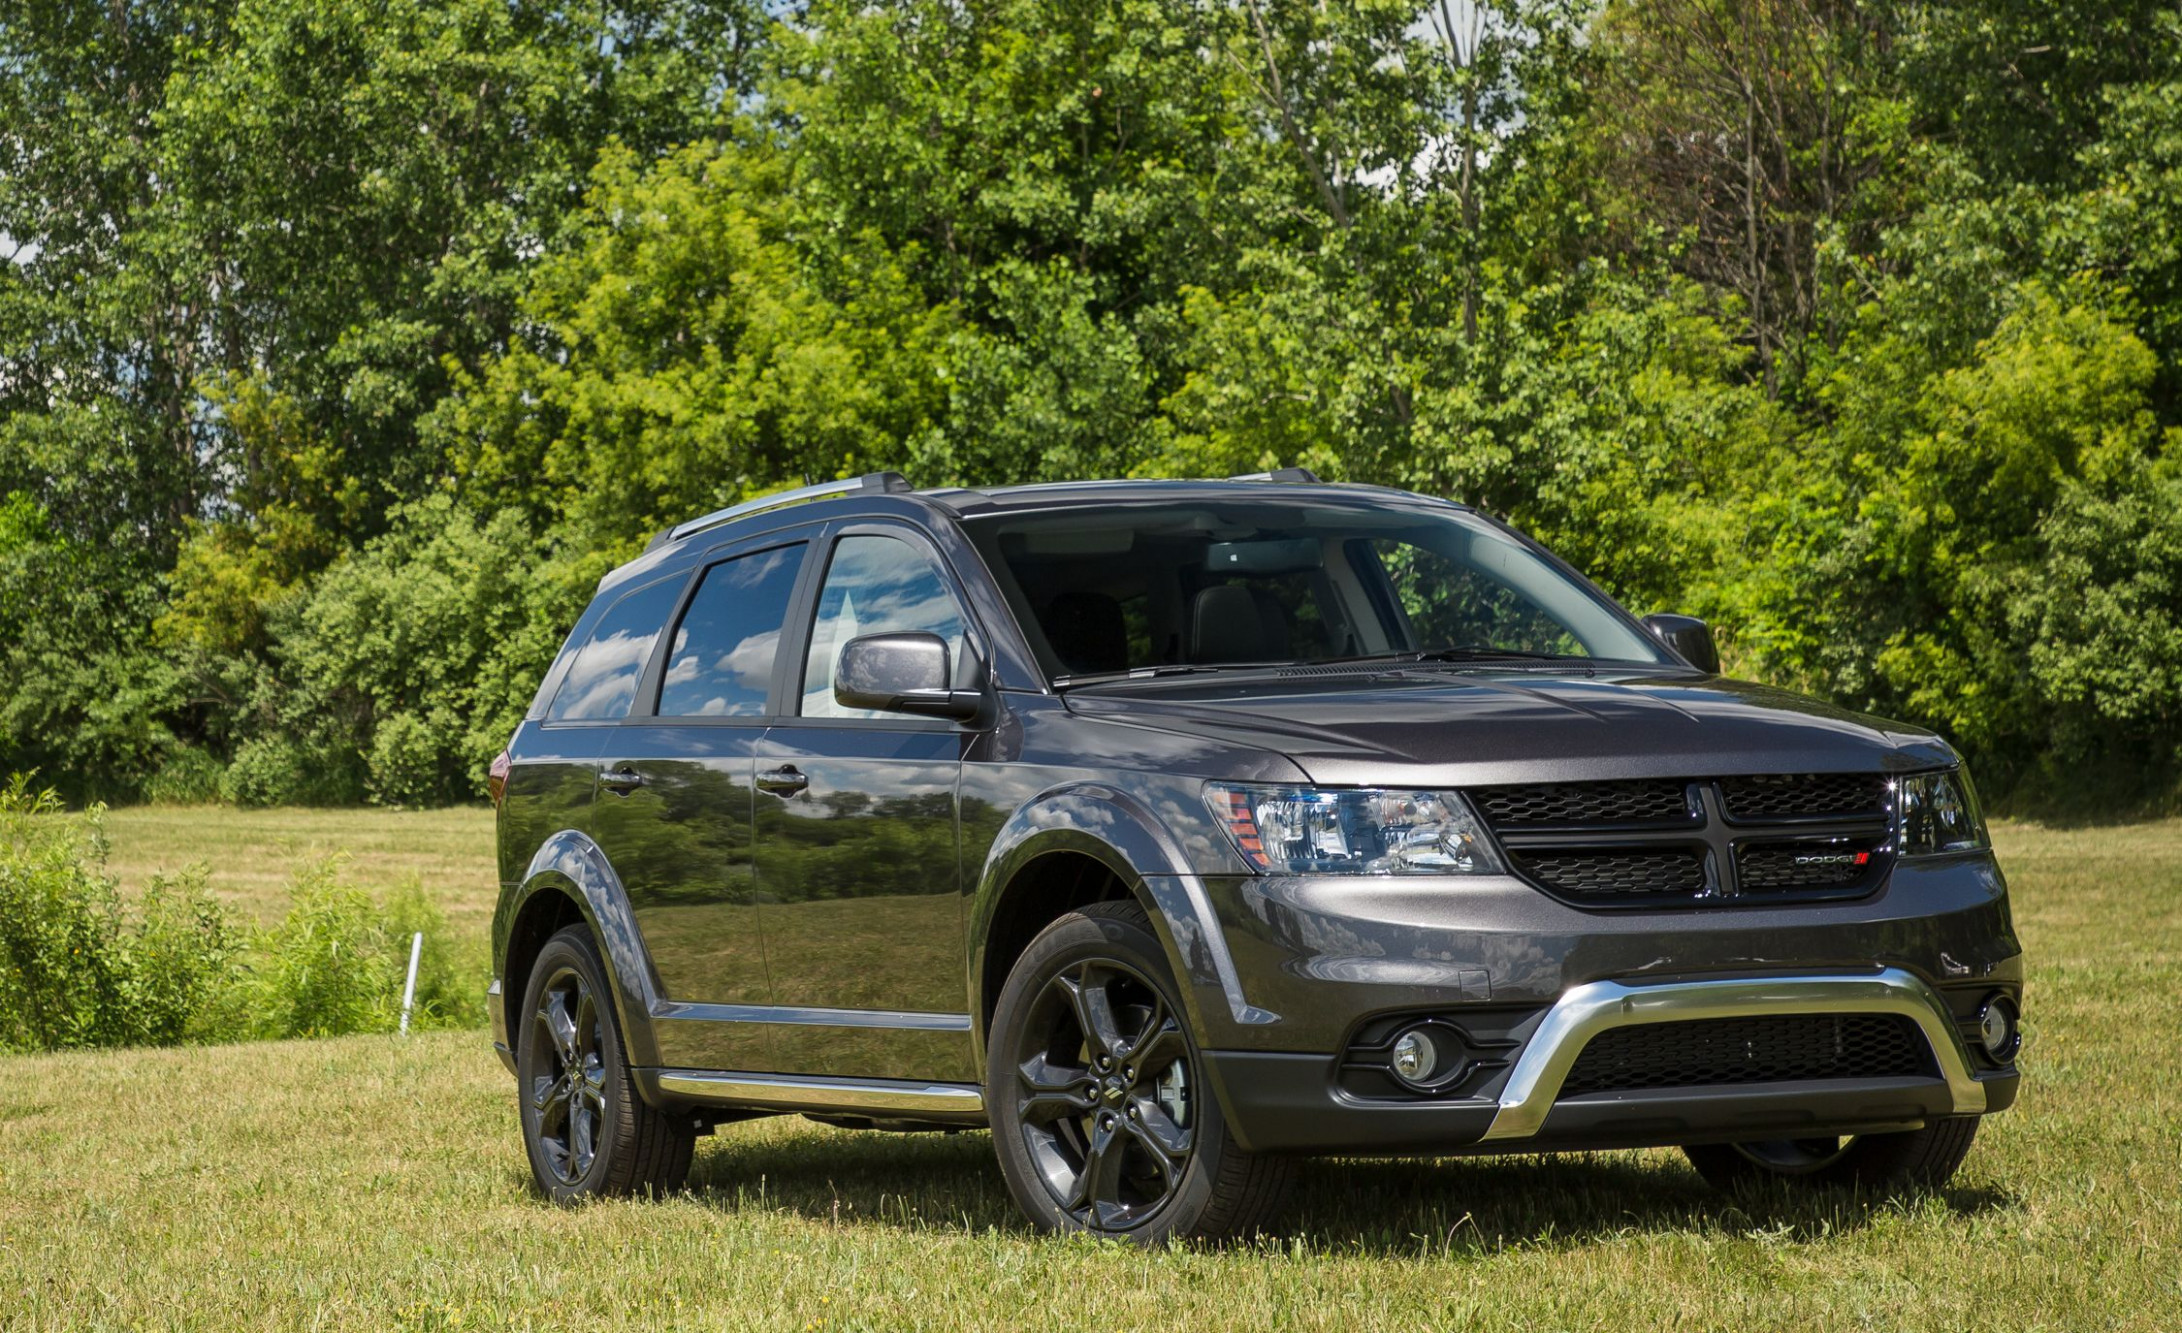 New Model and Performance 2022 Dodge Journey Srt